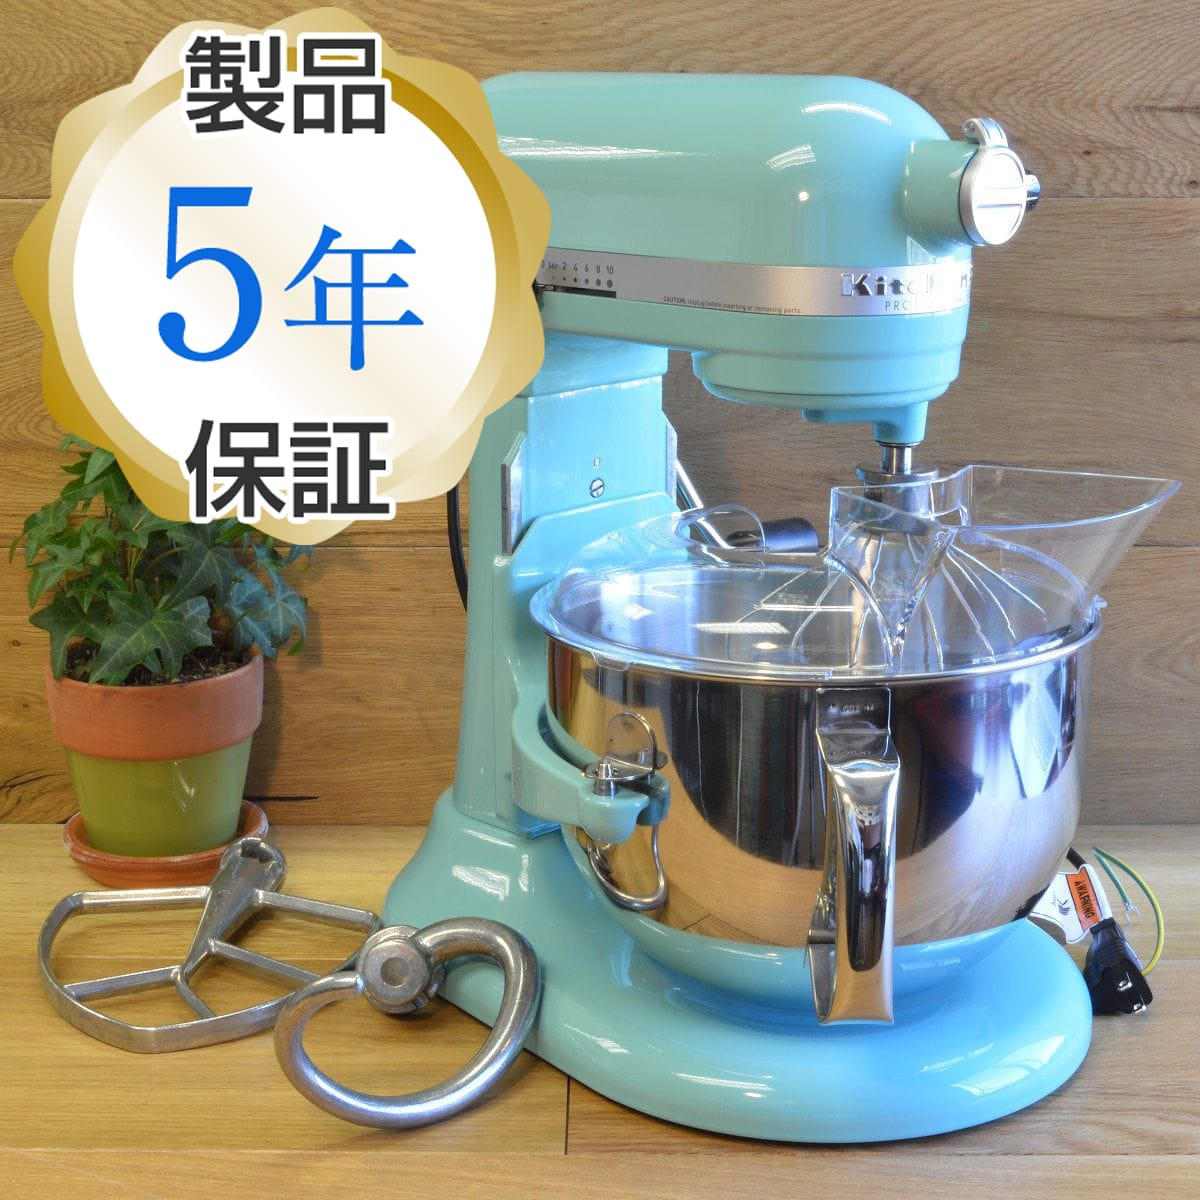 Kitchen Aid Stands Mixer Professional 600 5 8l Aqua Sky Blue Kitchenaid Kp26m1xaq 6 Quart Stand